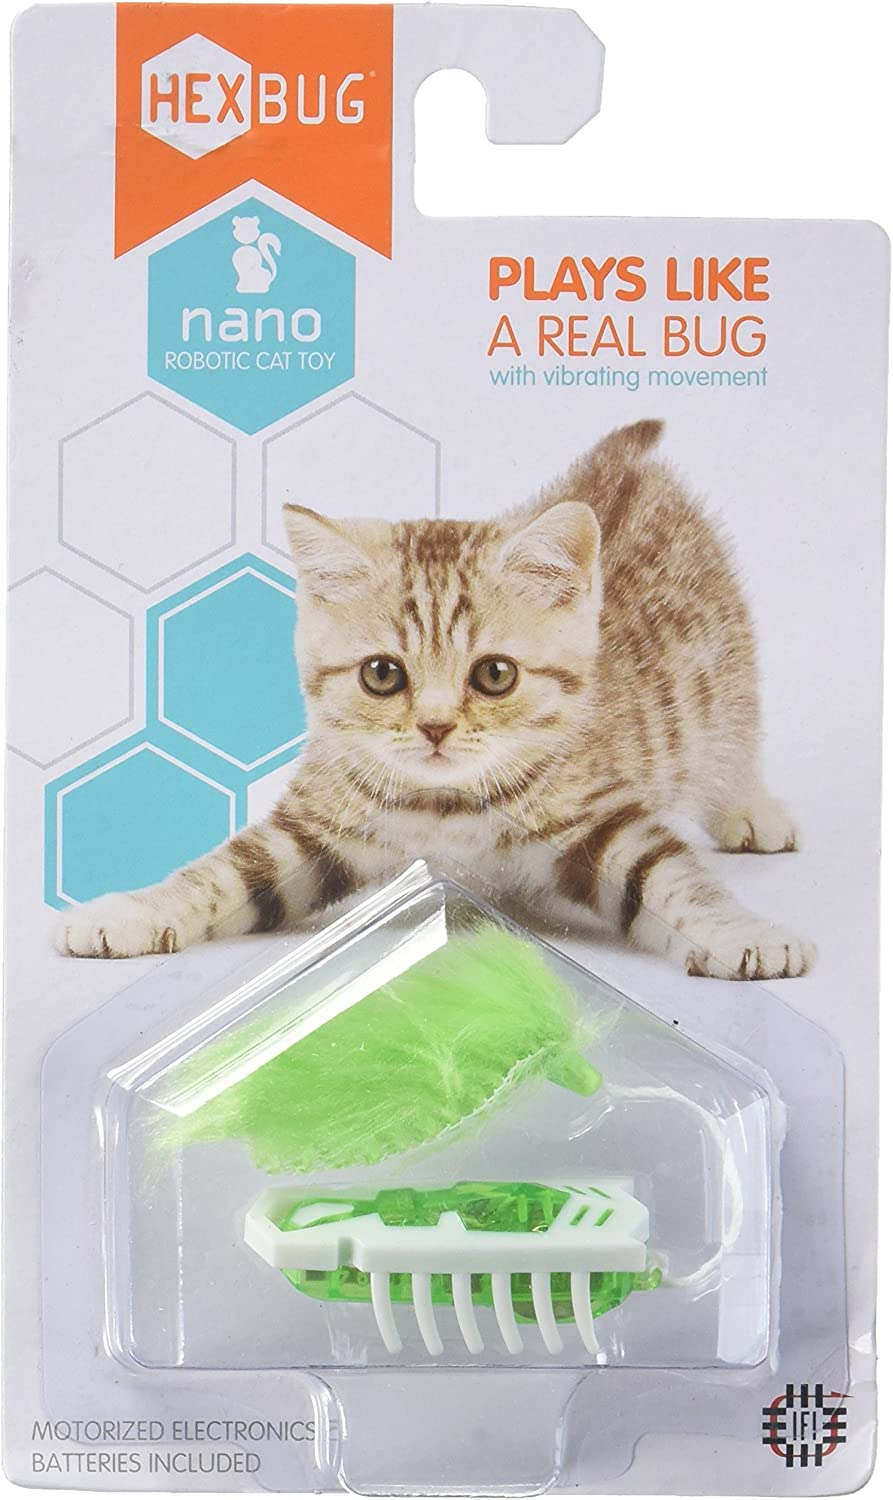 Hexbug Nano Robotic Bug Motorized Cat Toy White & Green